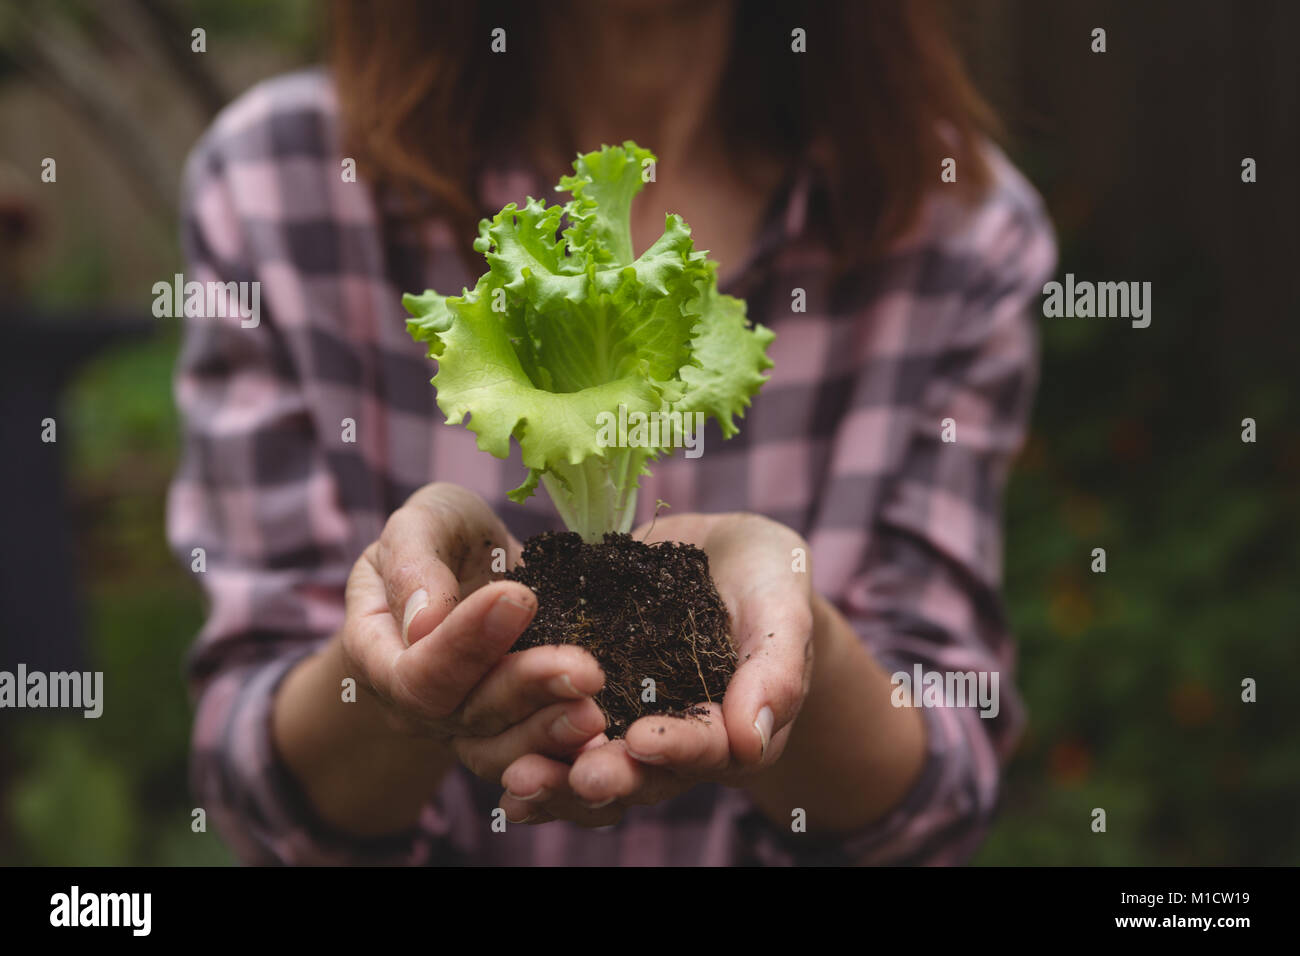 Woman holding plant in hand - Stock Image